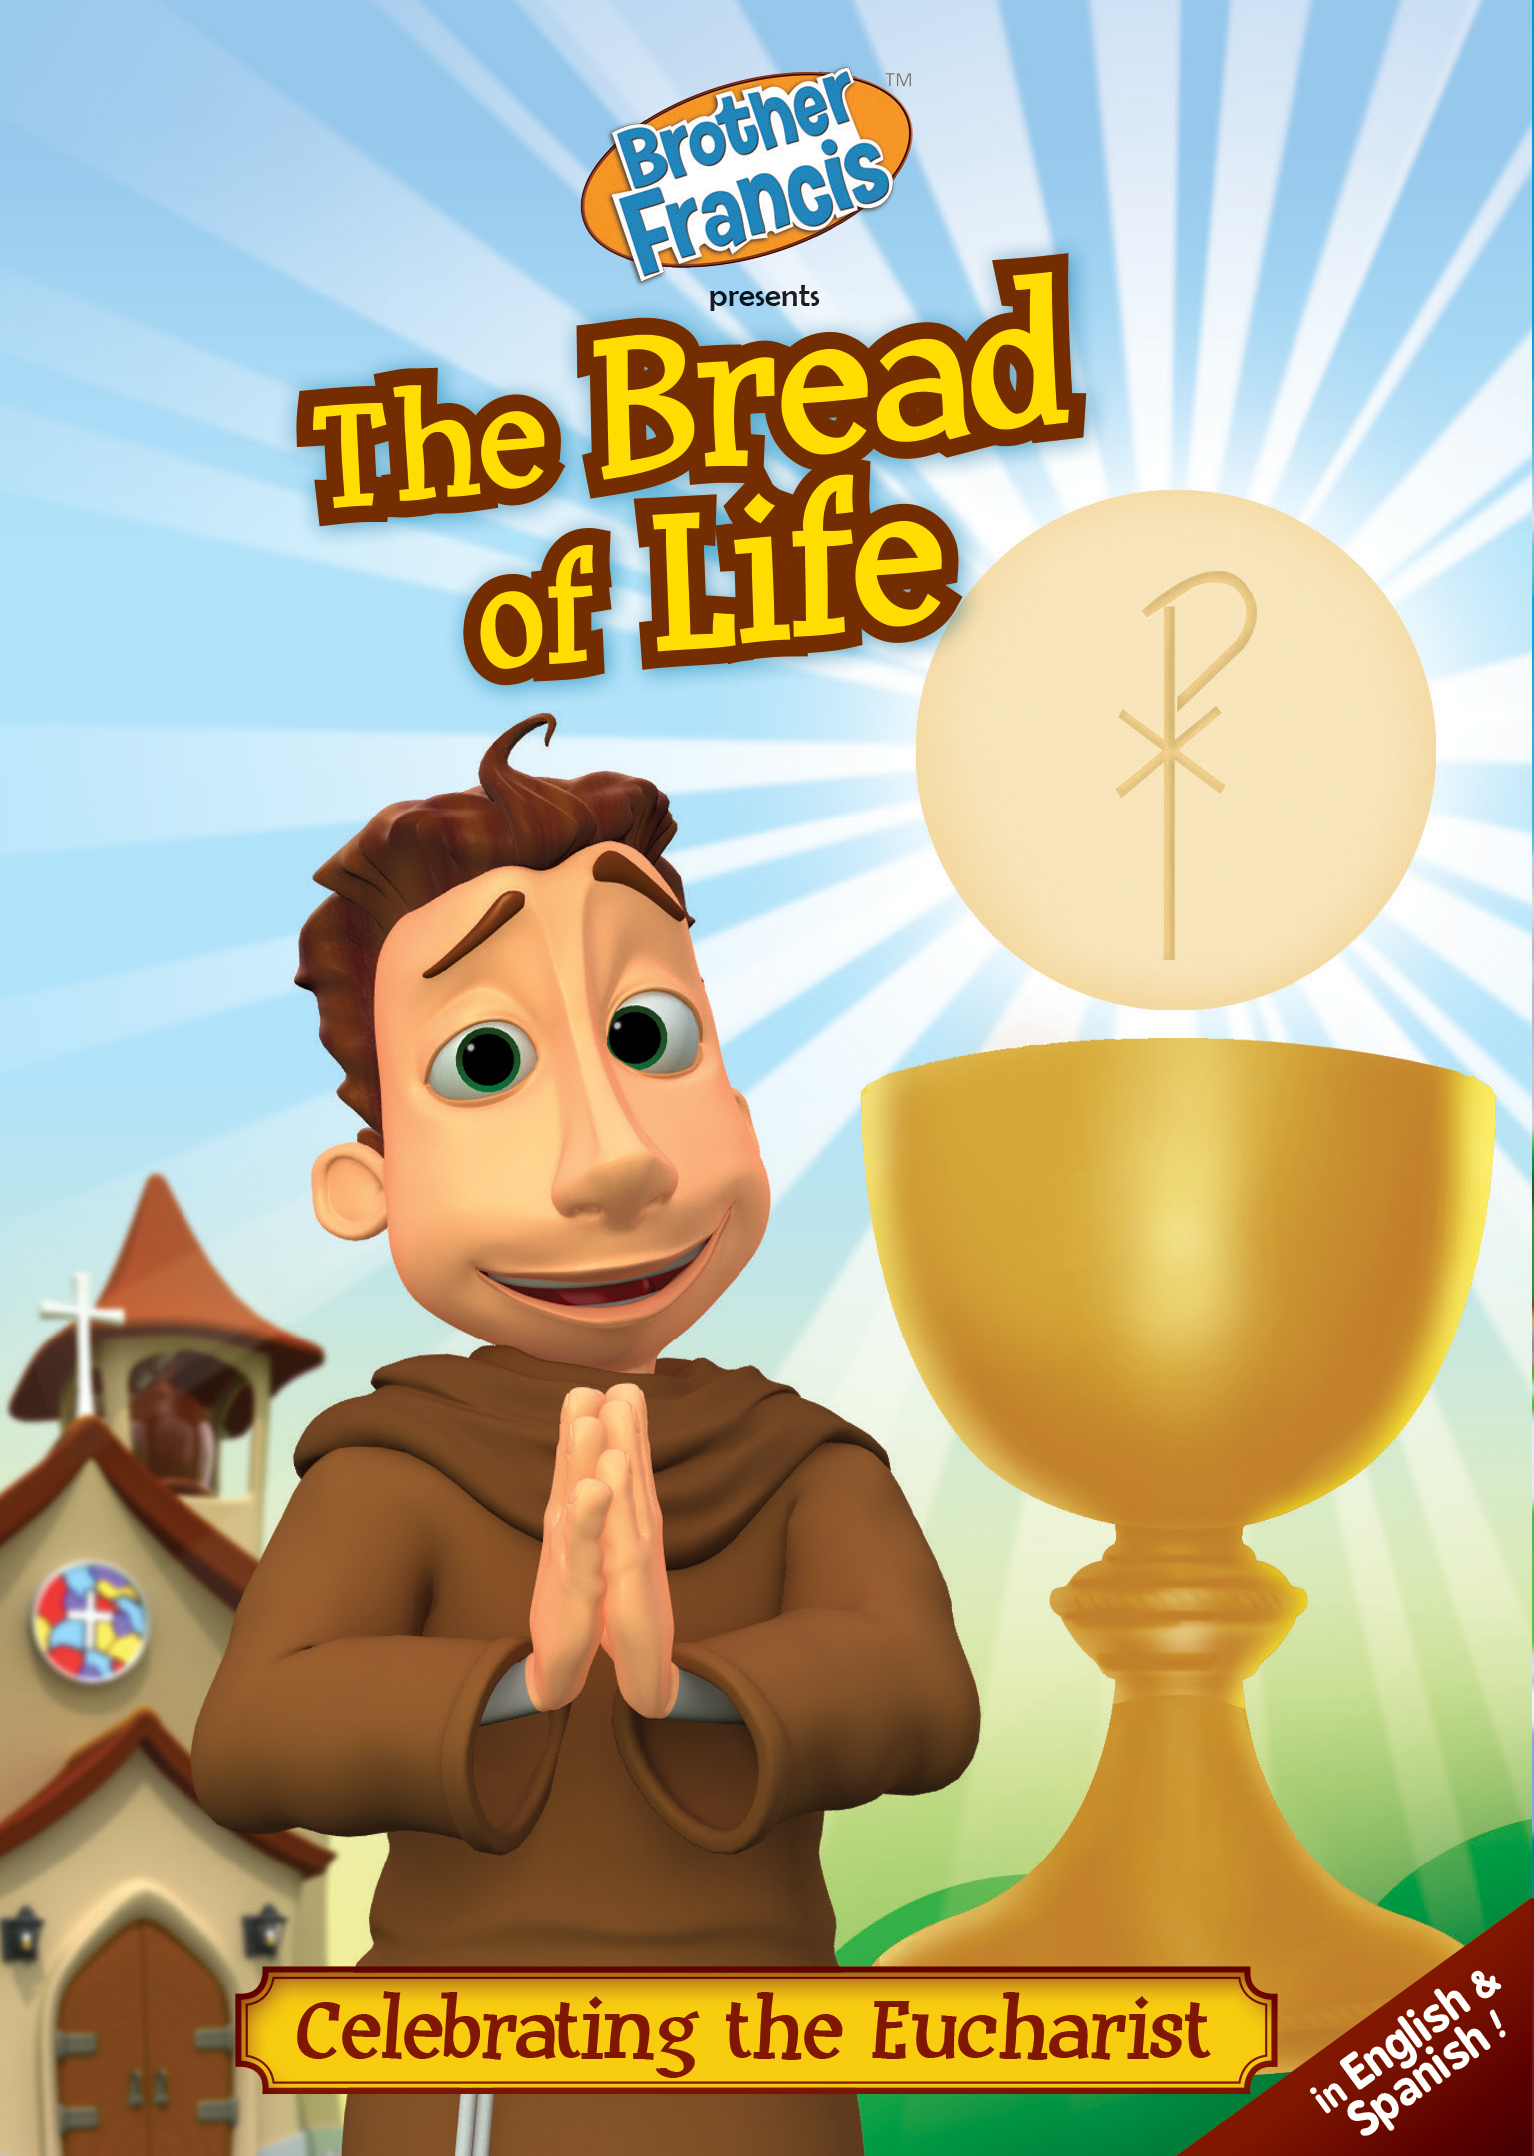 Brother Francis Episode 2: The Bread of Life